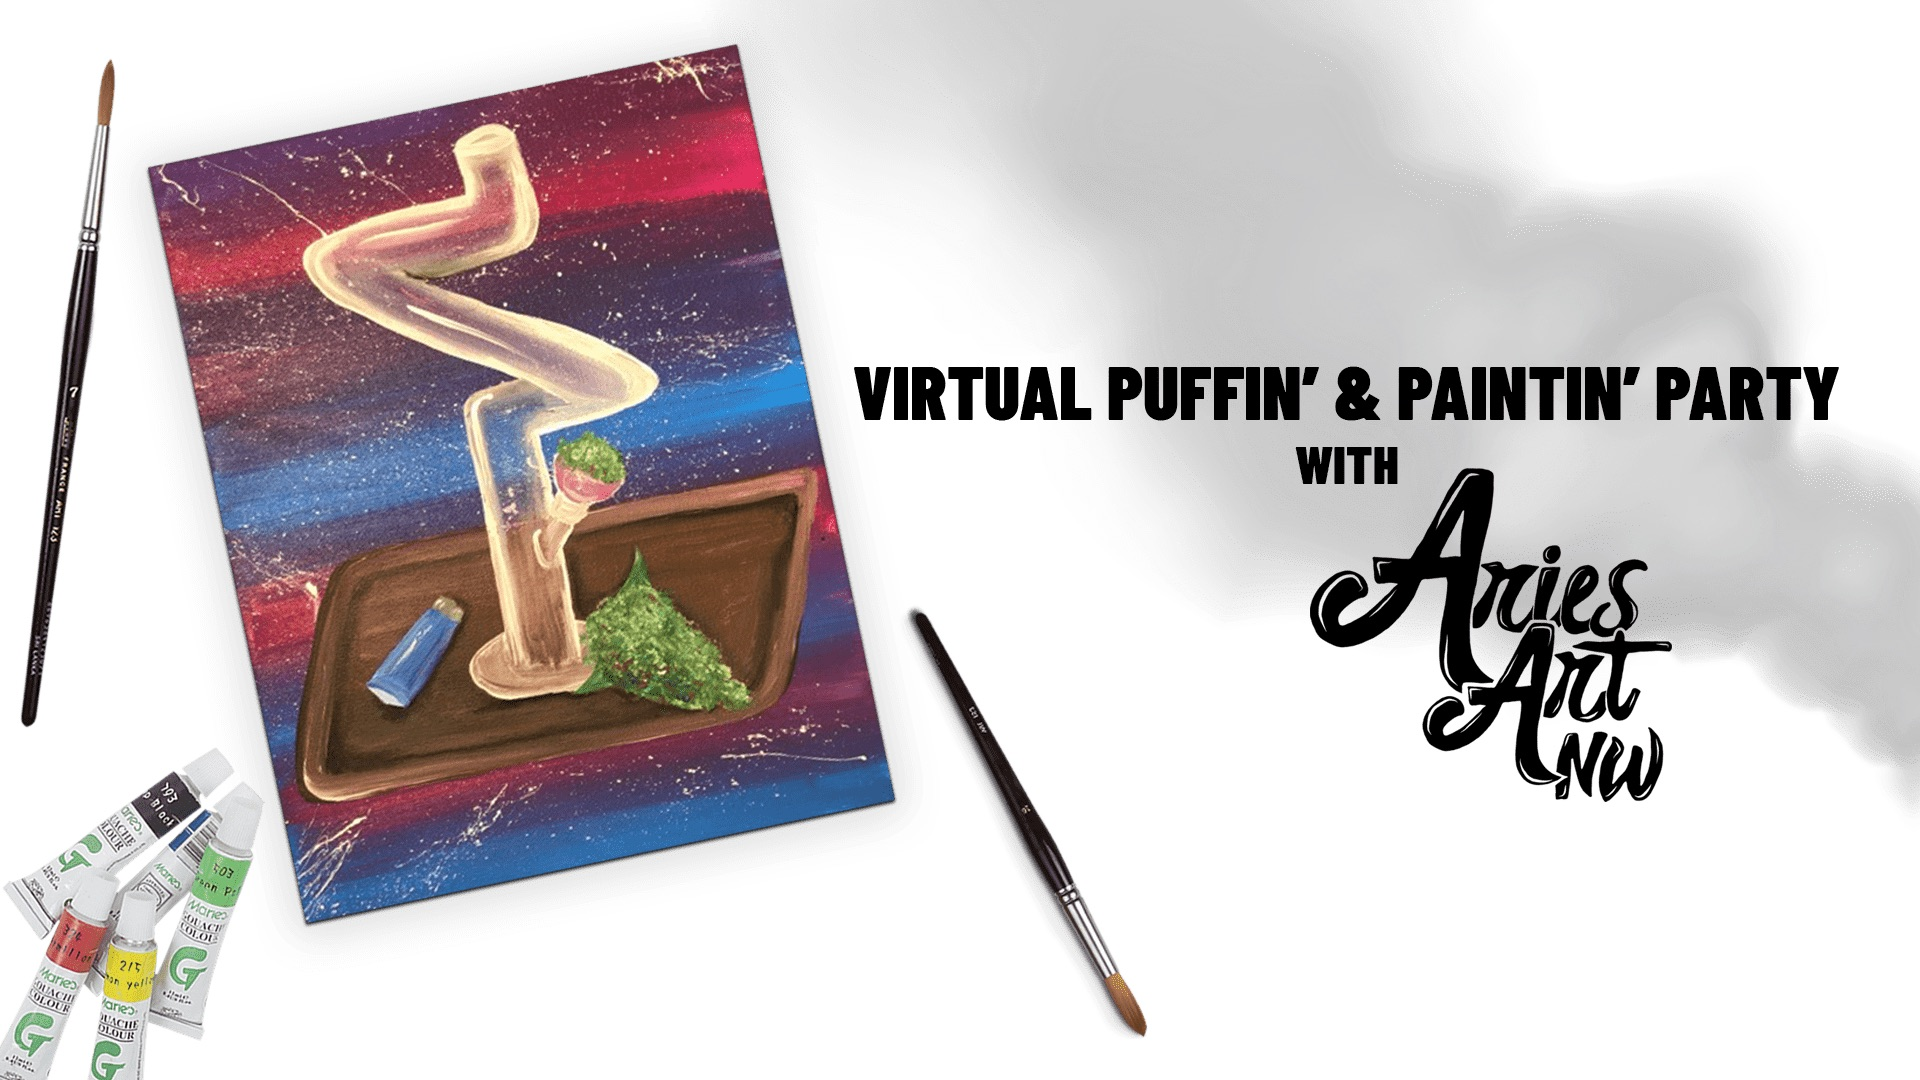 Puffin' & Paintin' Party